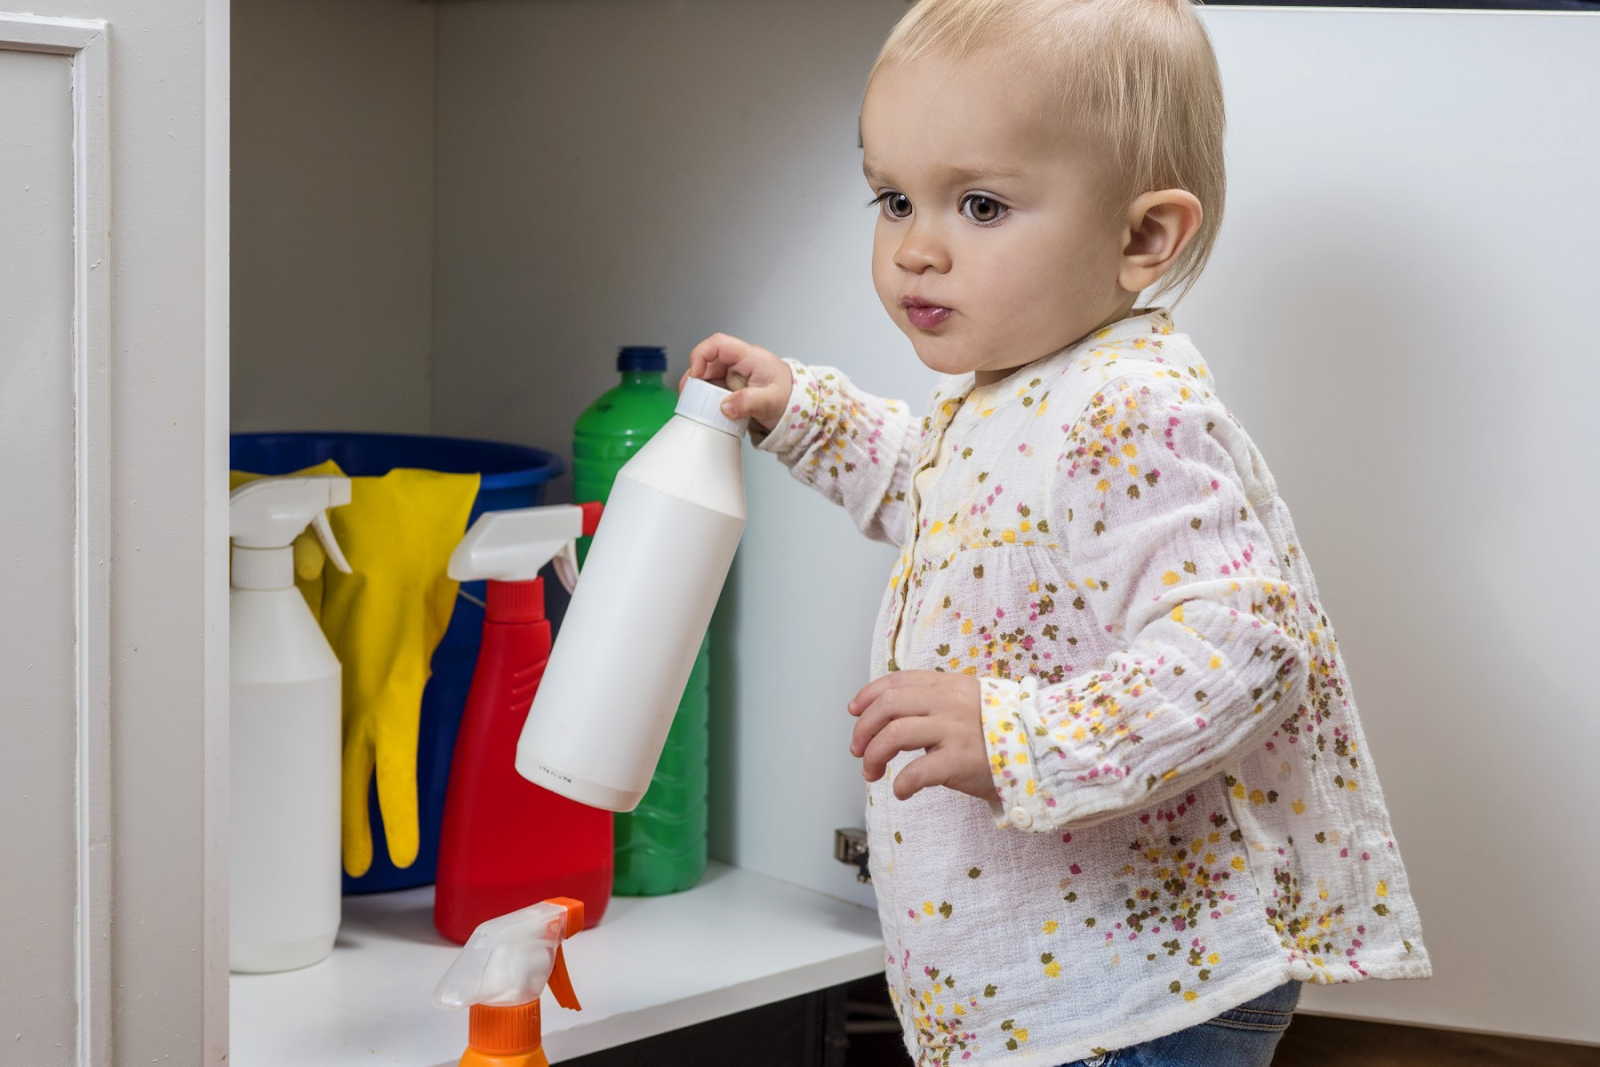 Safety Rules at Home for Kids